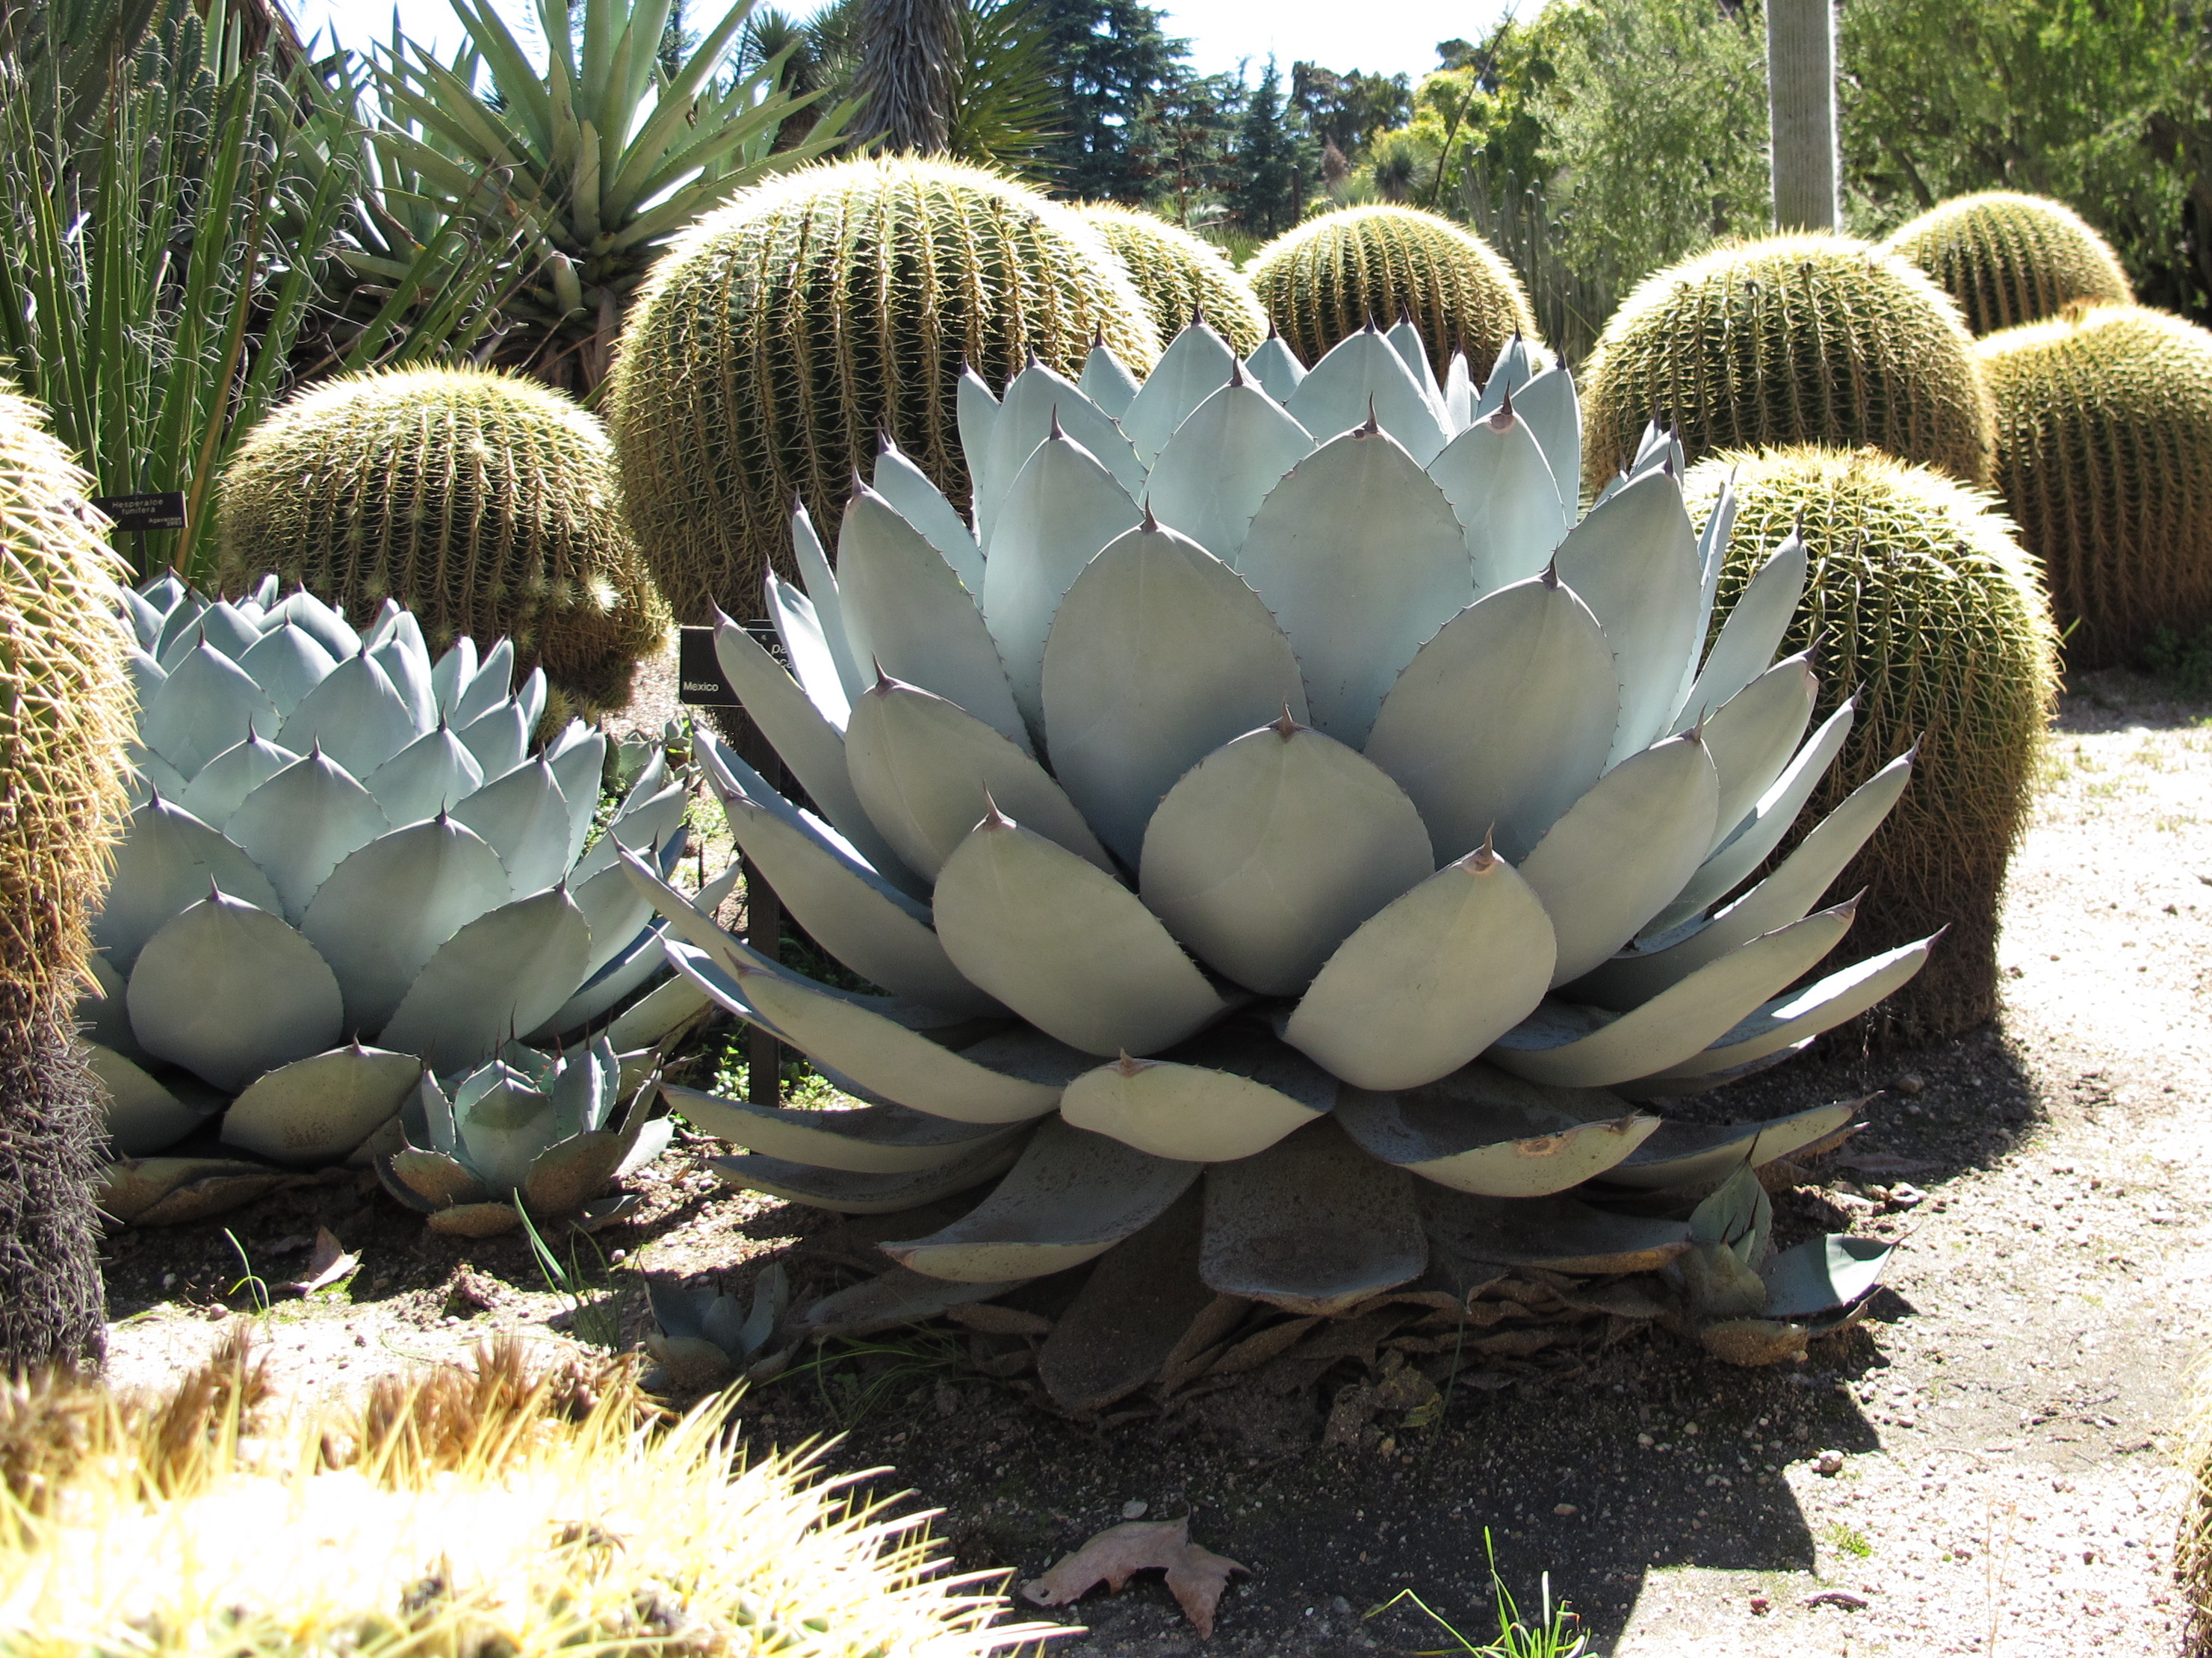 File:Agave parryi 3.jpg - Wikimedia Commons